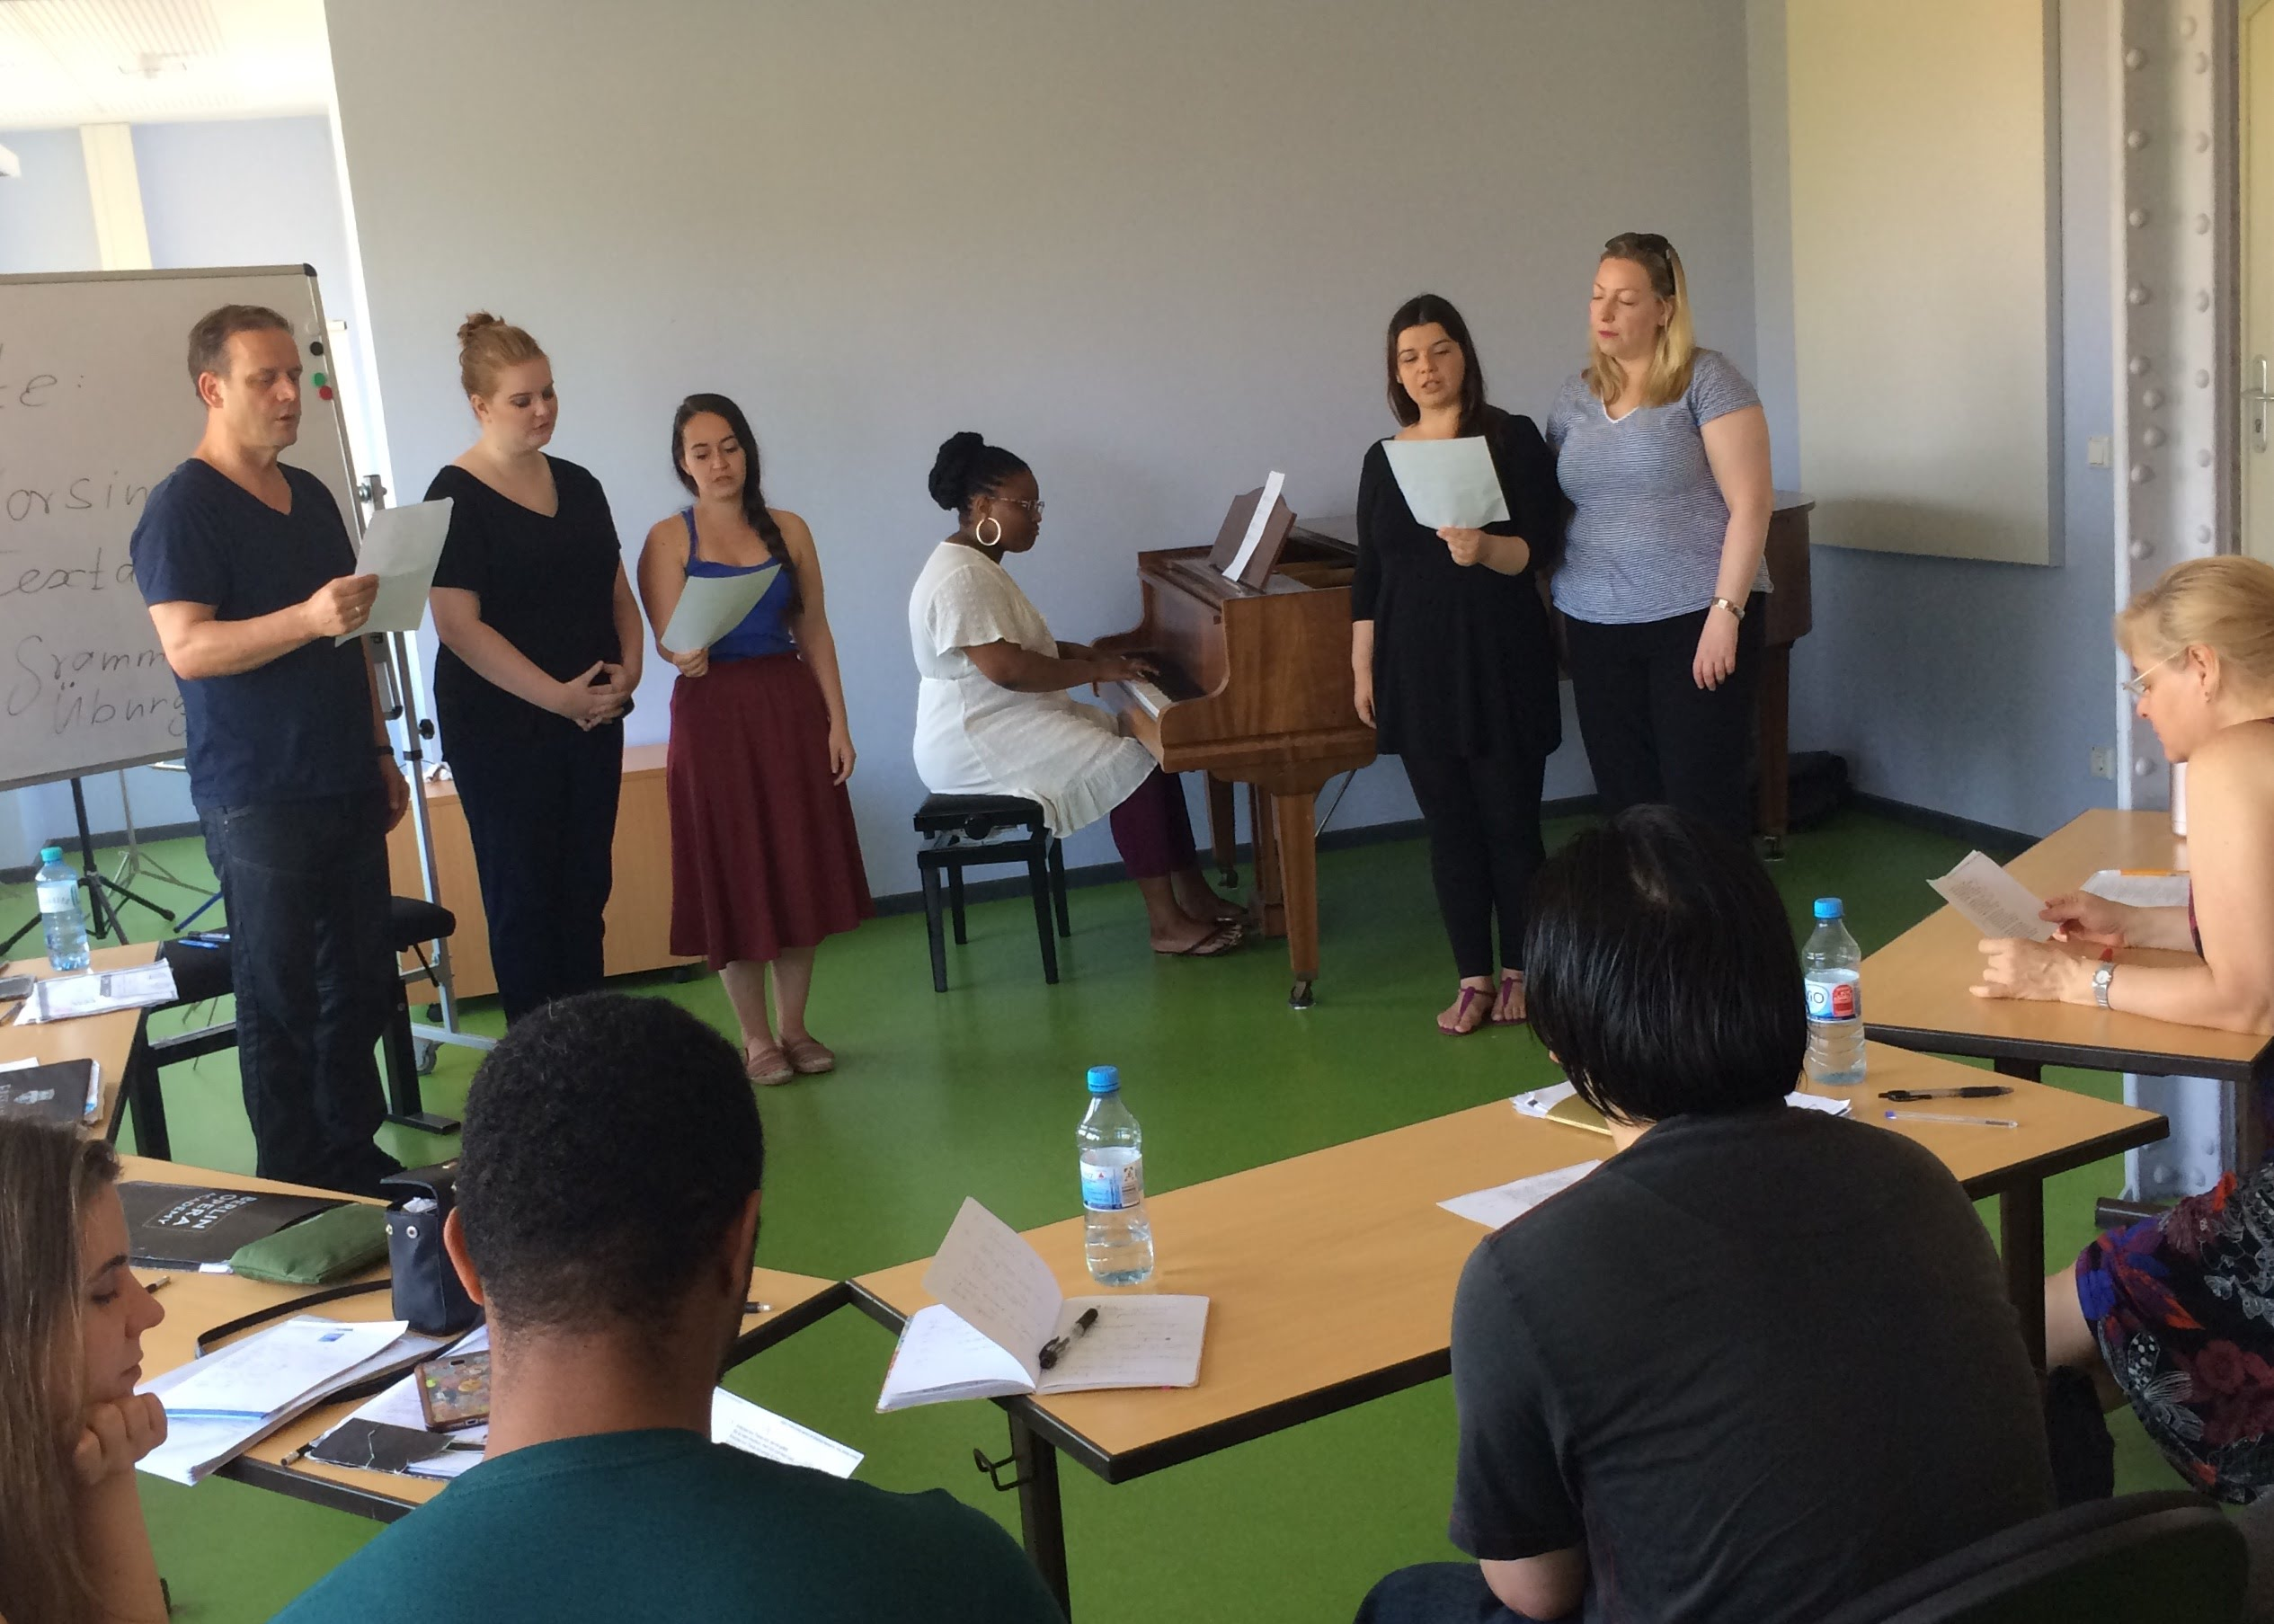 HALO SCHOOL in Berlin Charlottenburg. German language classes from A1 to C2 level, examen preparations for Telc, DaF & Goethe certificates.